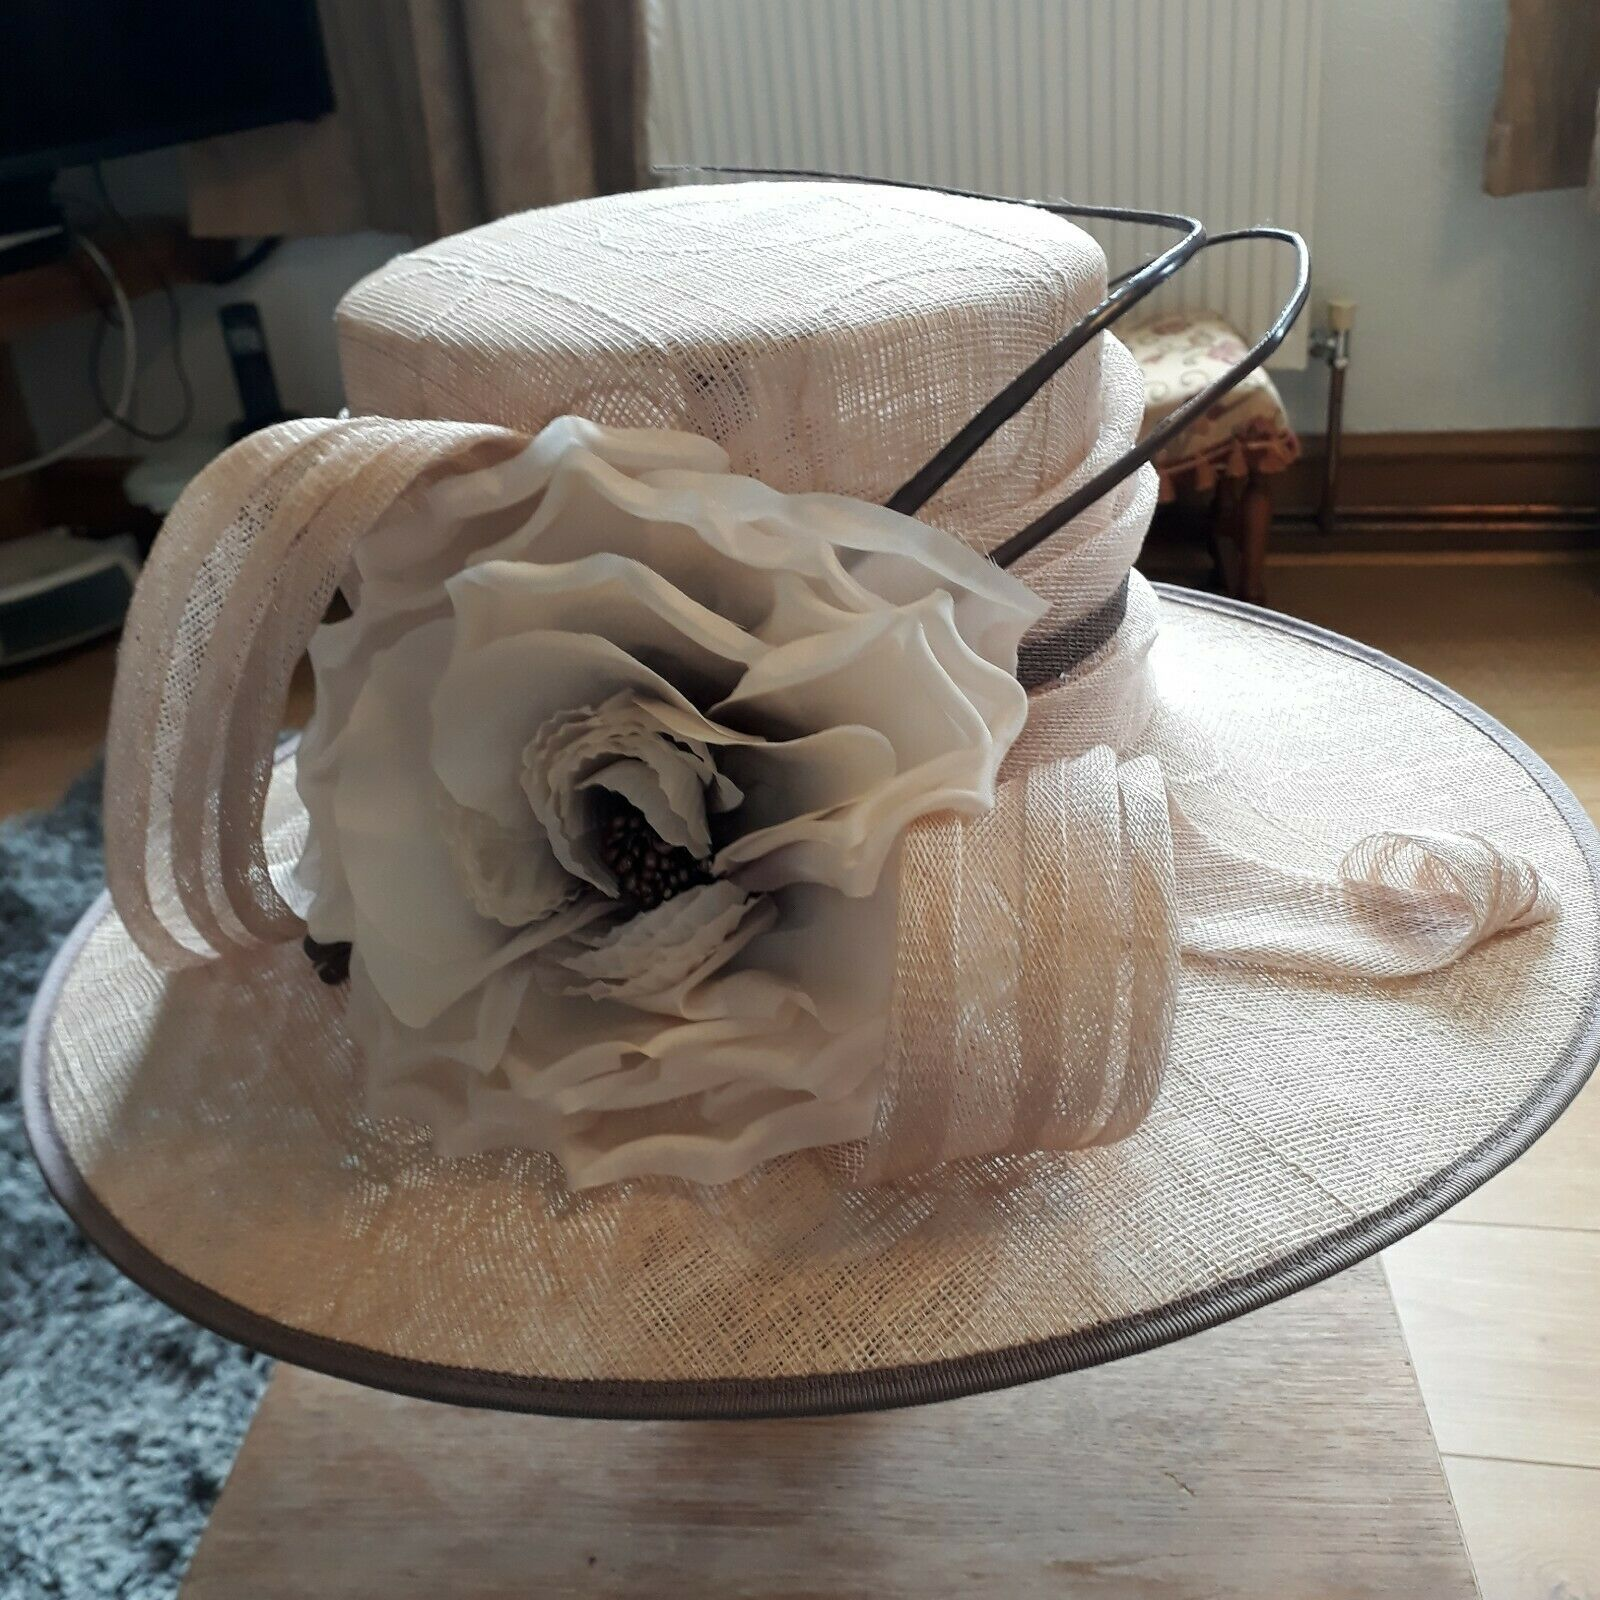 Lovely Jacques vert wedding formal races ascot hat in soft peach and brown trim